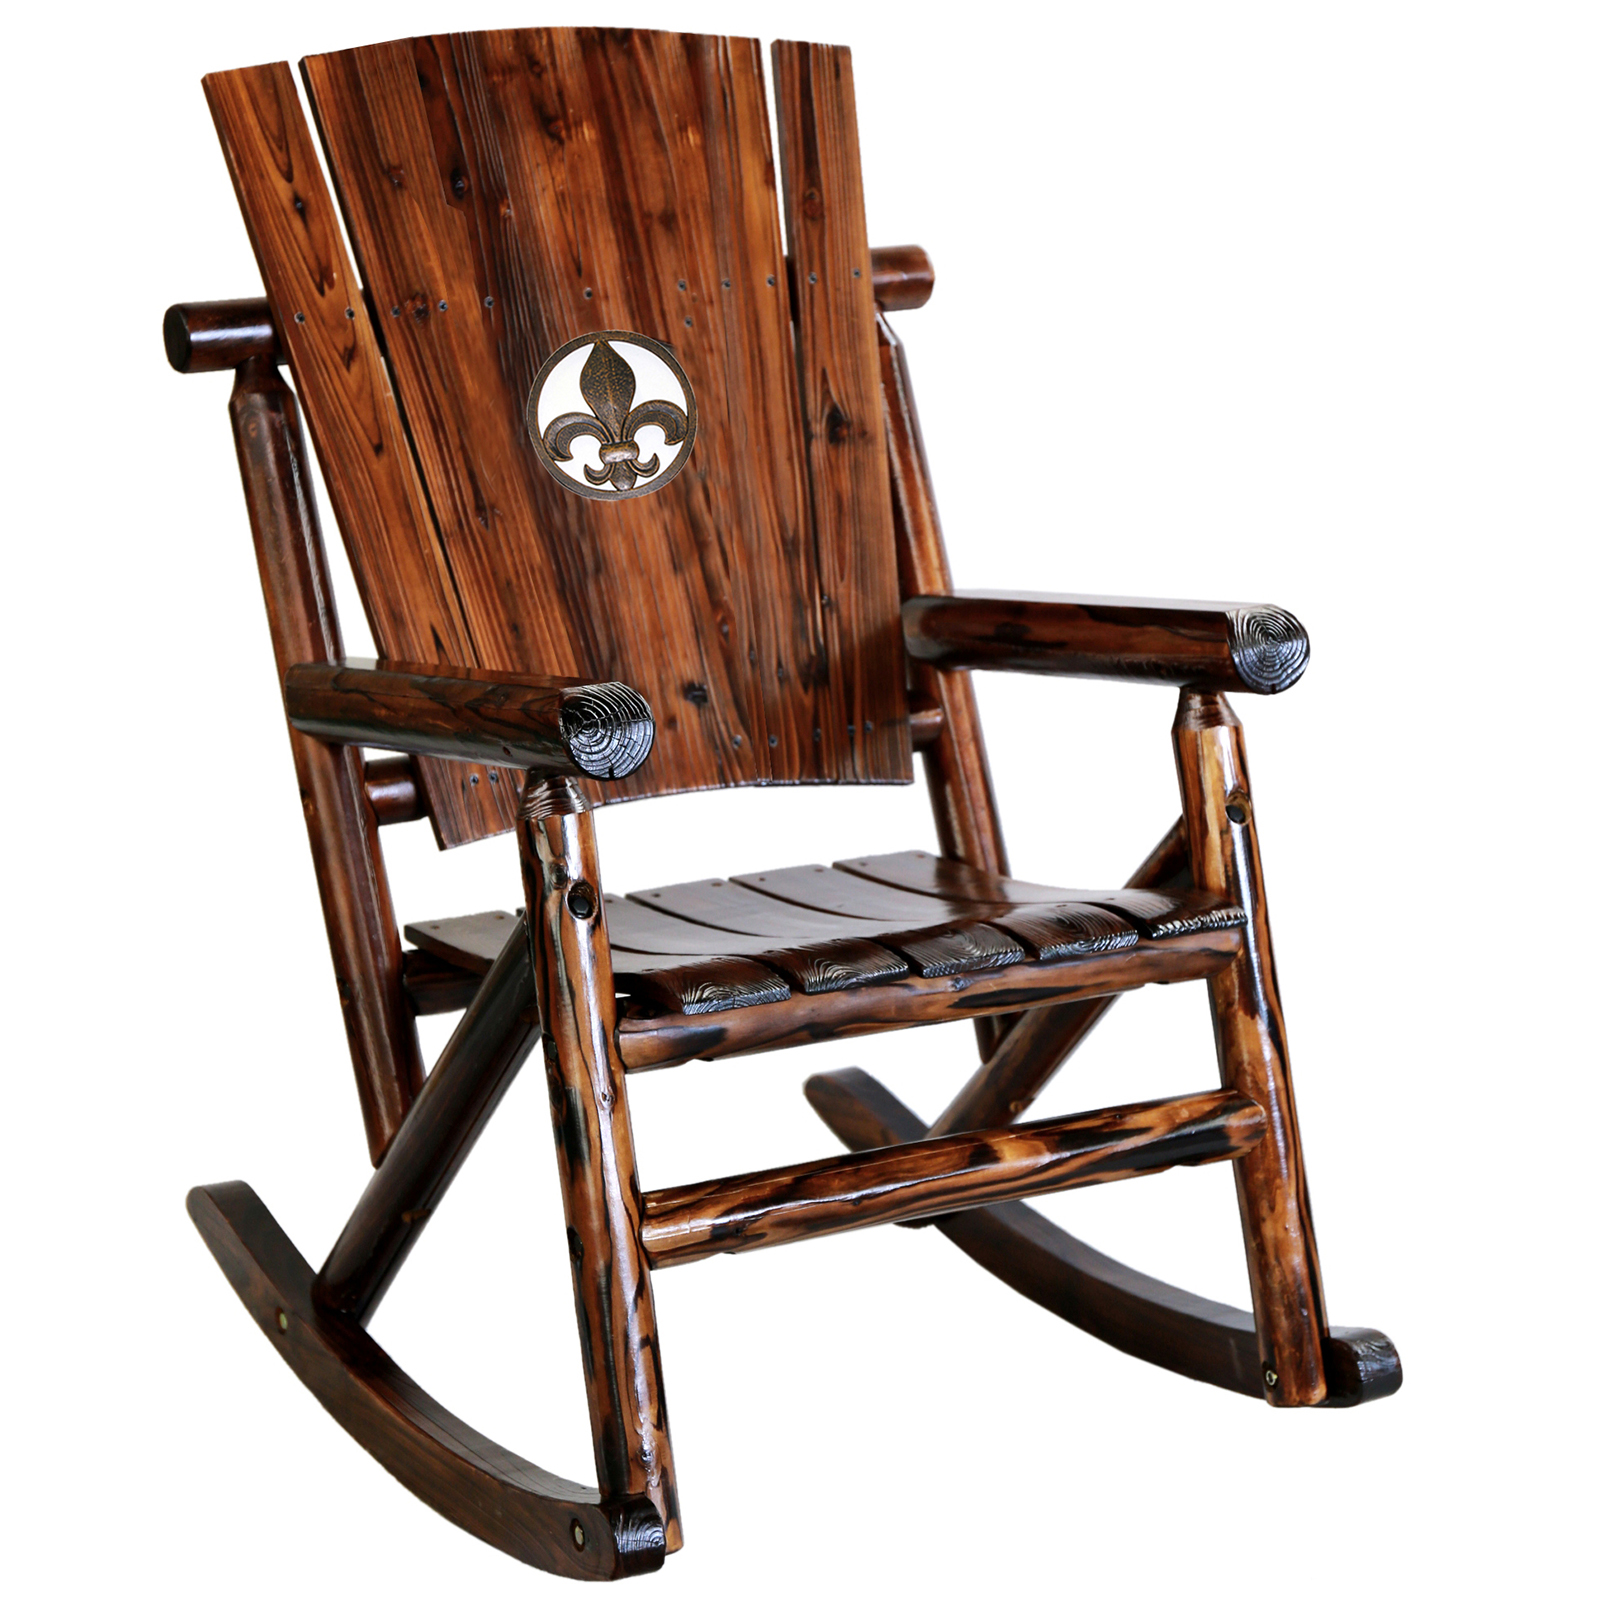 Belham Living Cottonwood Indoor Outdoor Wood Rocking Chairs Set